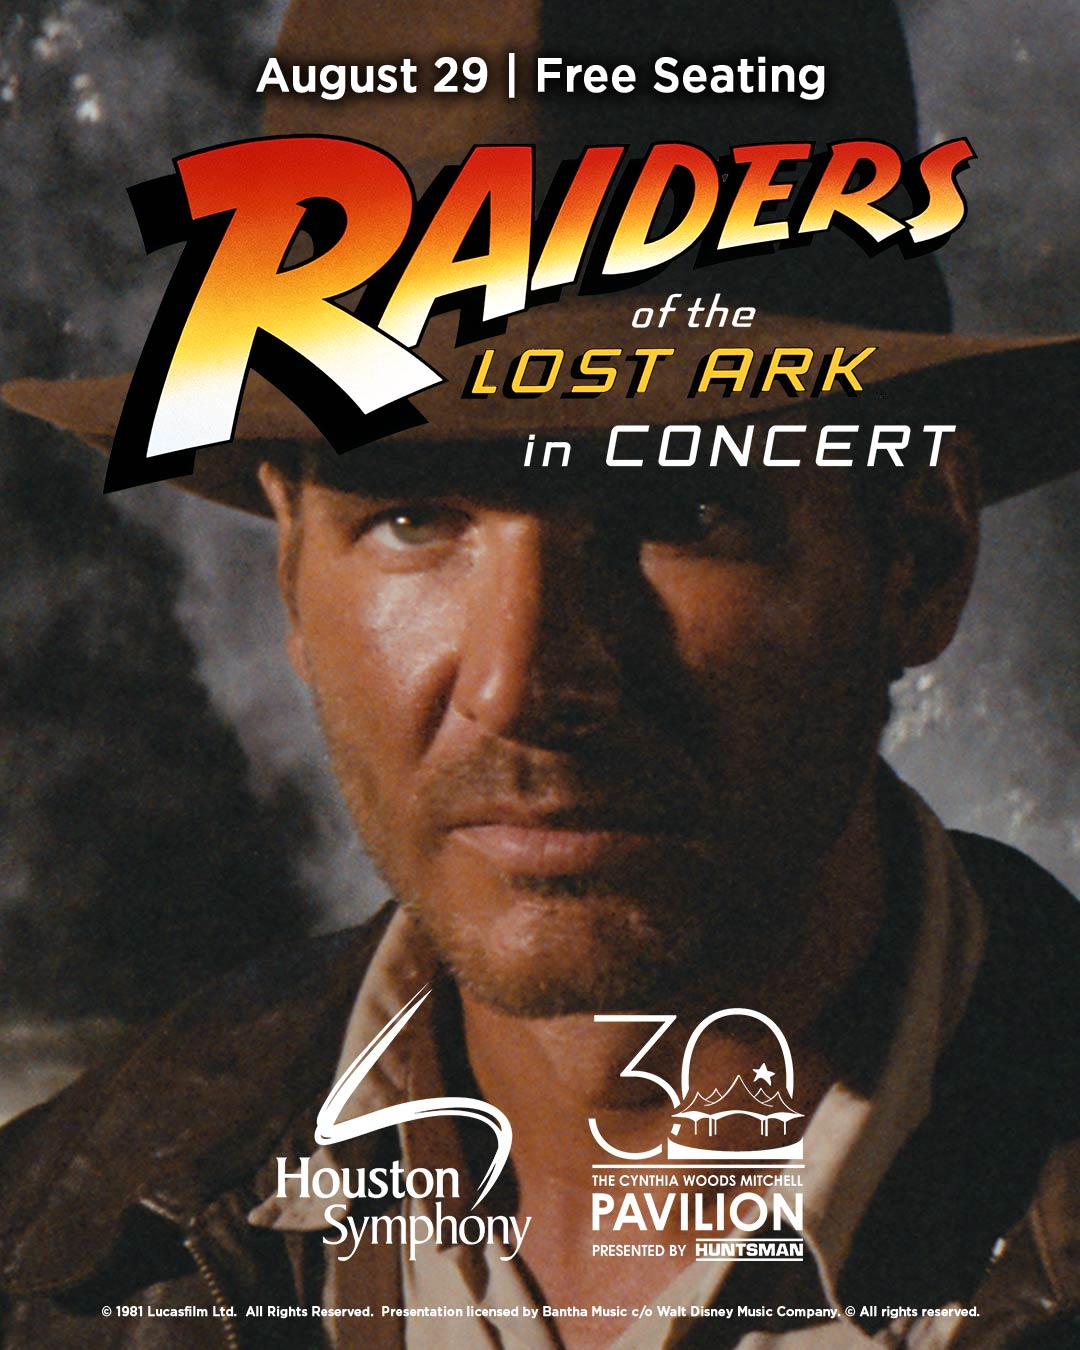 Raiders of the Lost Ark in Concert - August 29